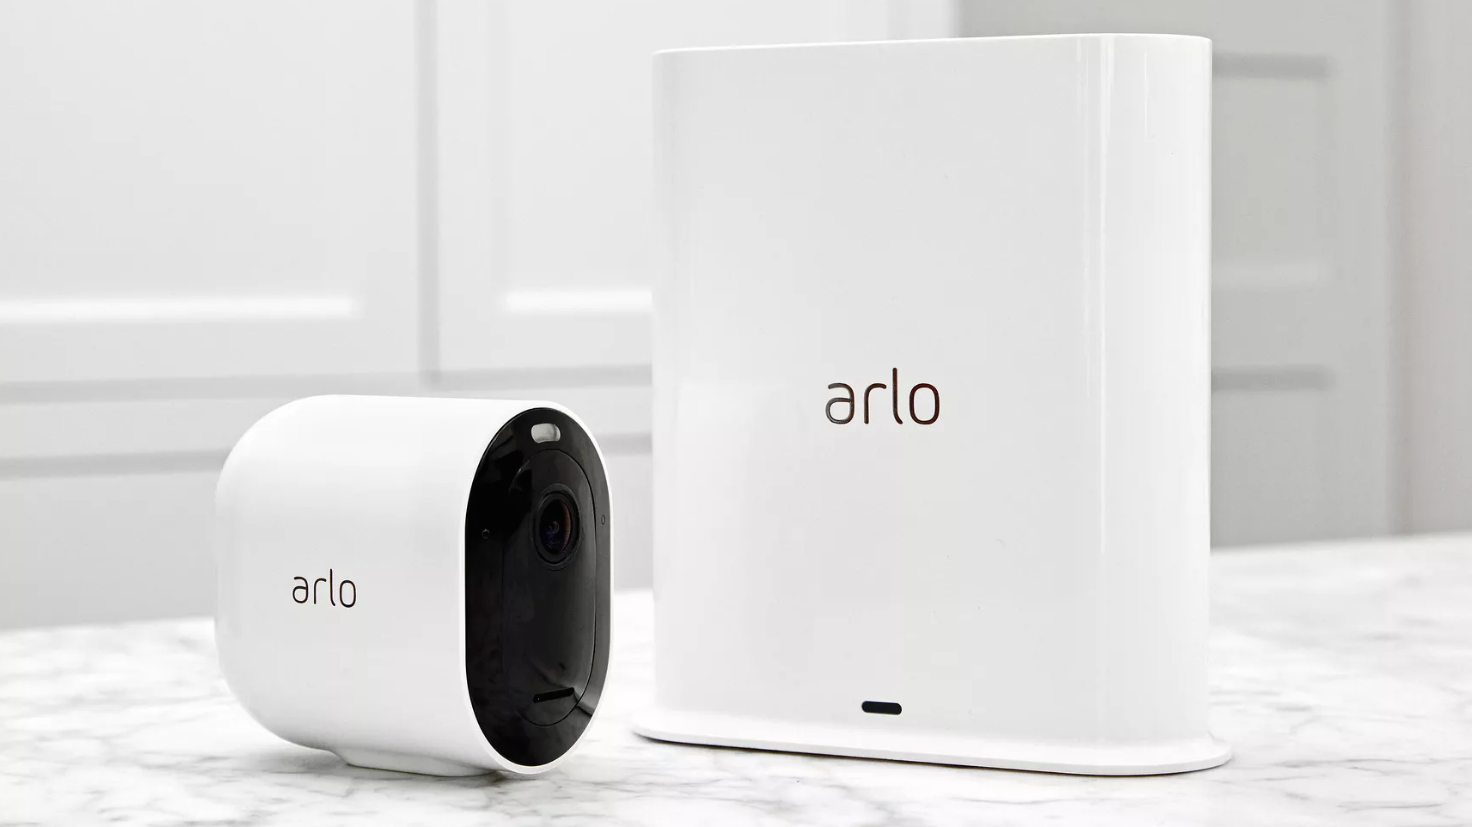 Here's Arlo's new security camera system